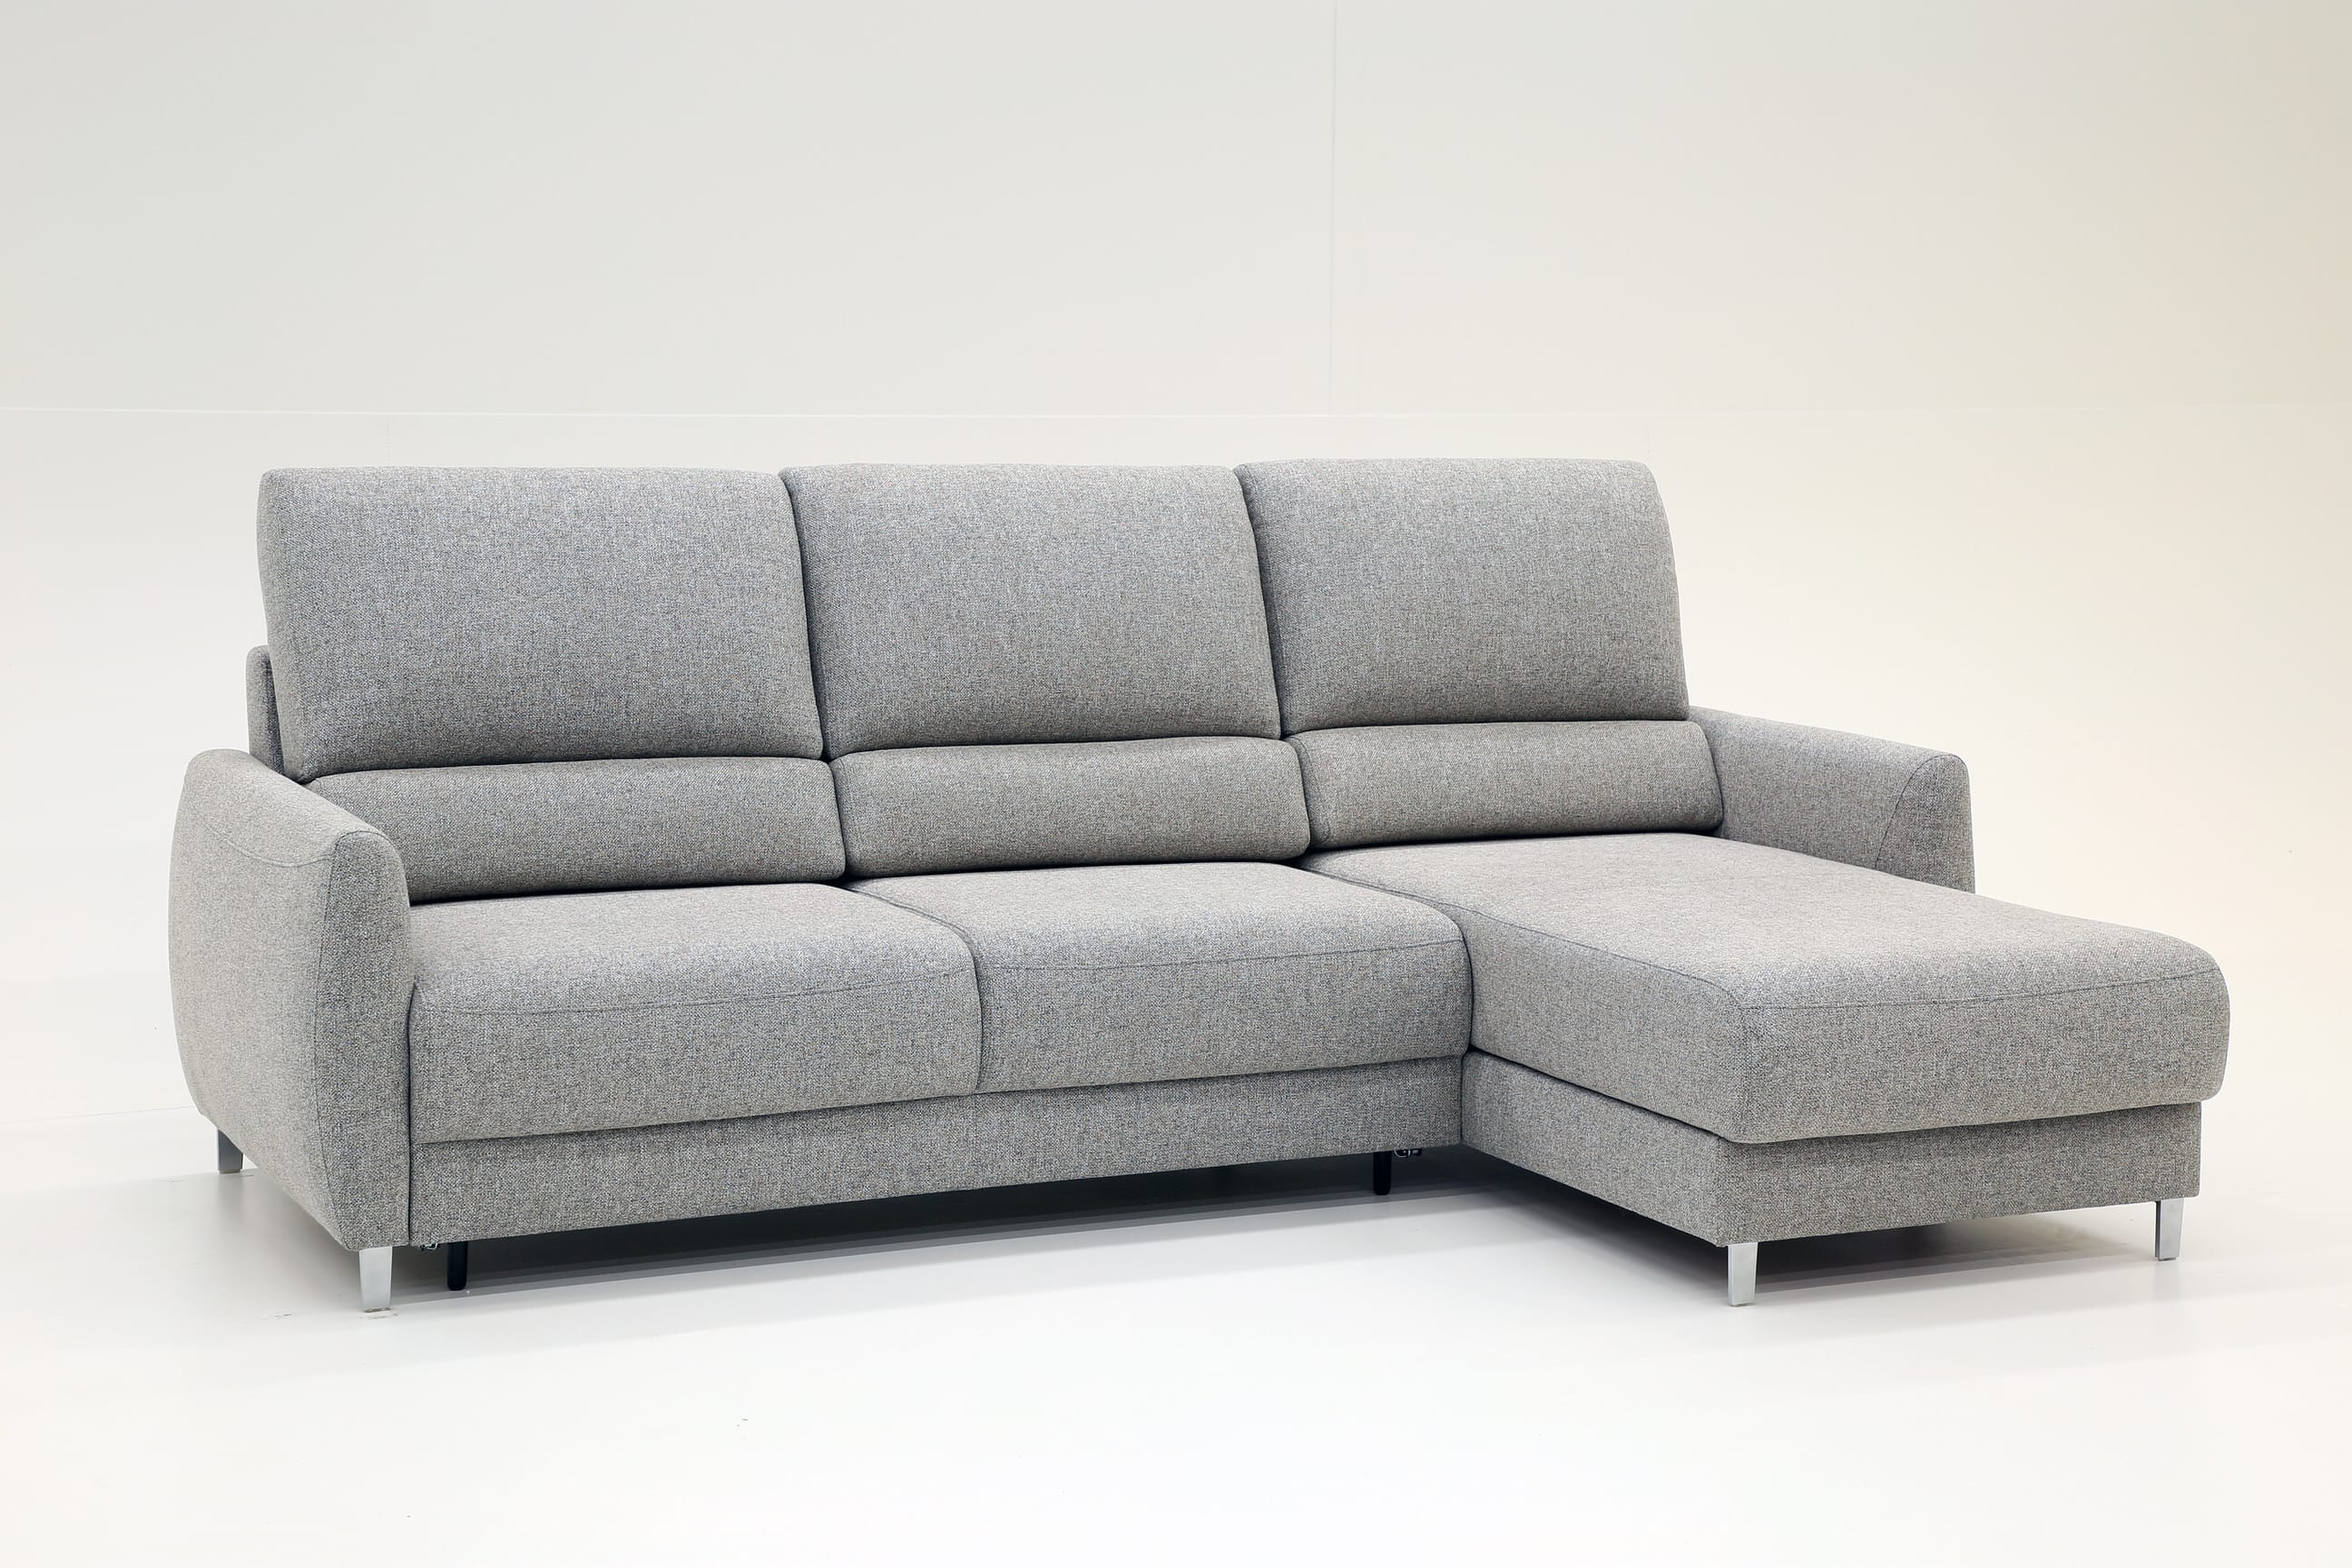 Superb Delta Sectional Sofa Sleeper Rhf By Luonto Furniture Beatyapartments Chair Design Images Beatyapartmentscom